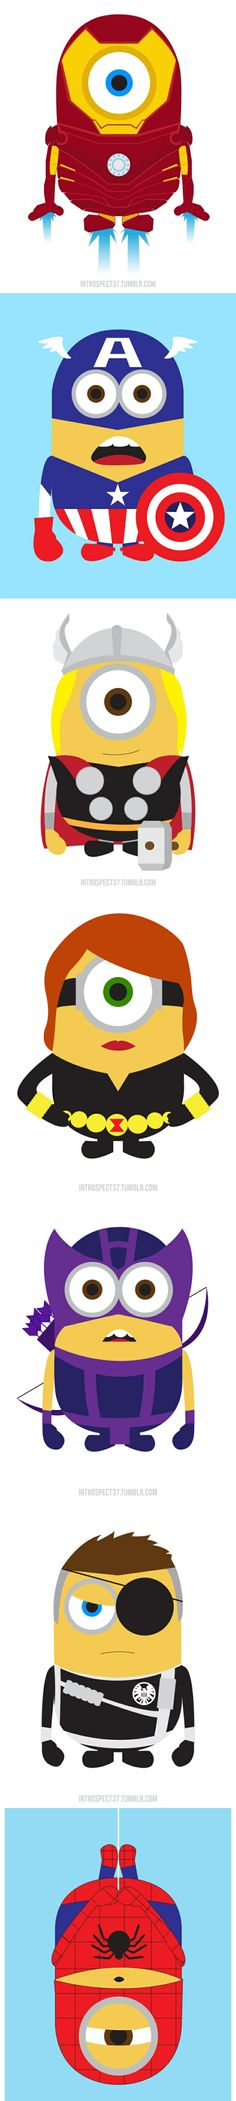 """Despicable Me"" Minions As Marvel Superheroes The minions of the movie ""Despicable Me"" in their new alternate heroic adventures. By Kevin Magic Lam."